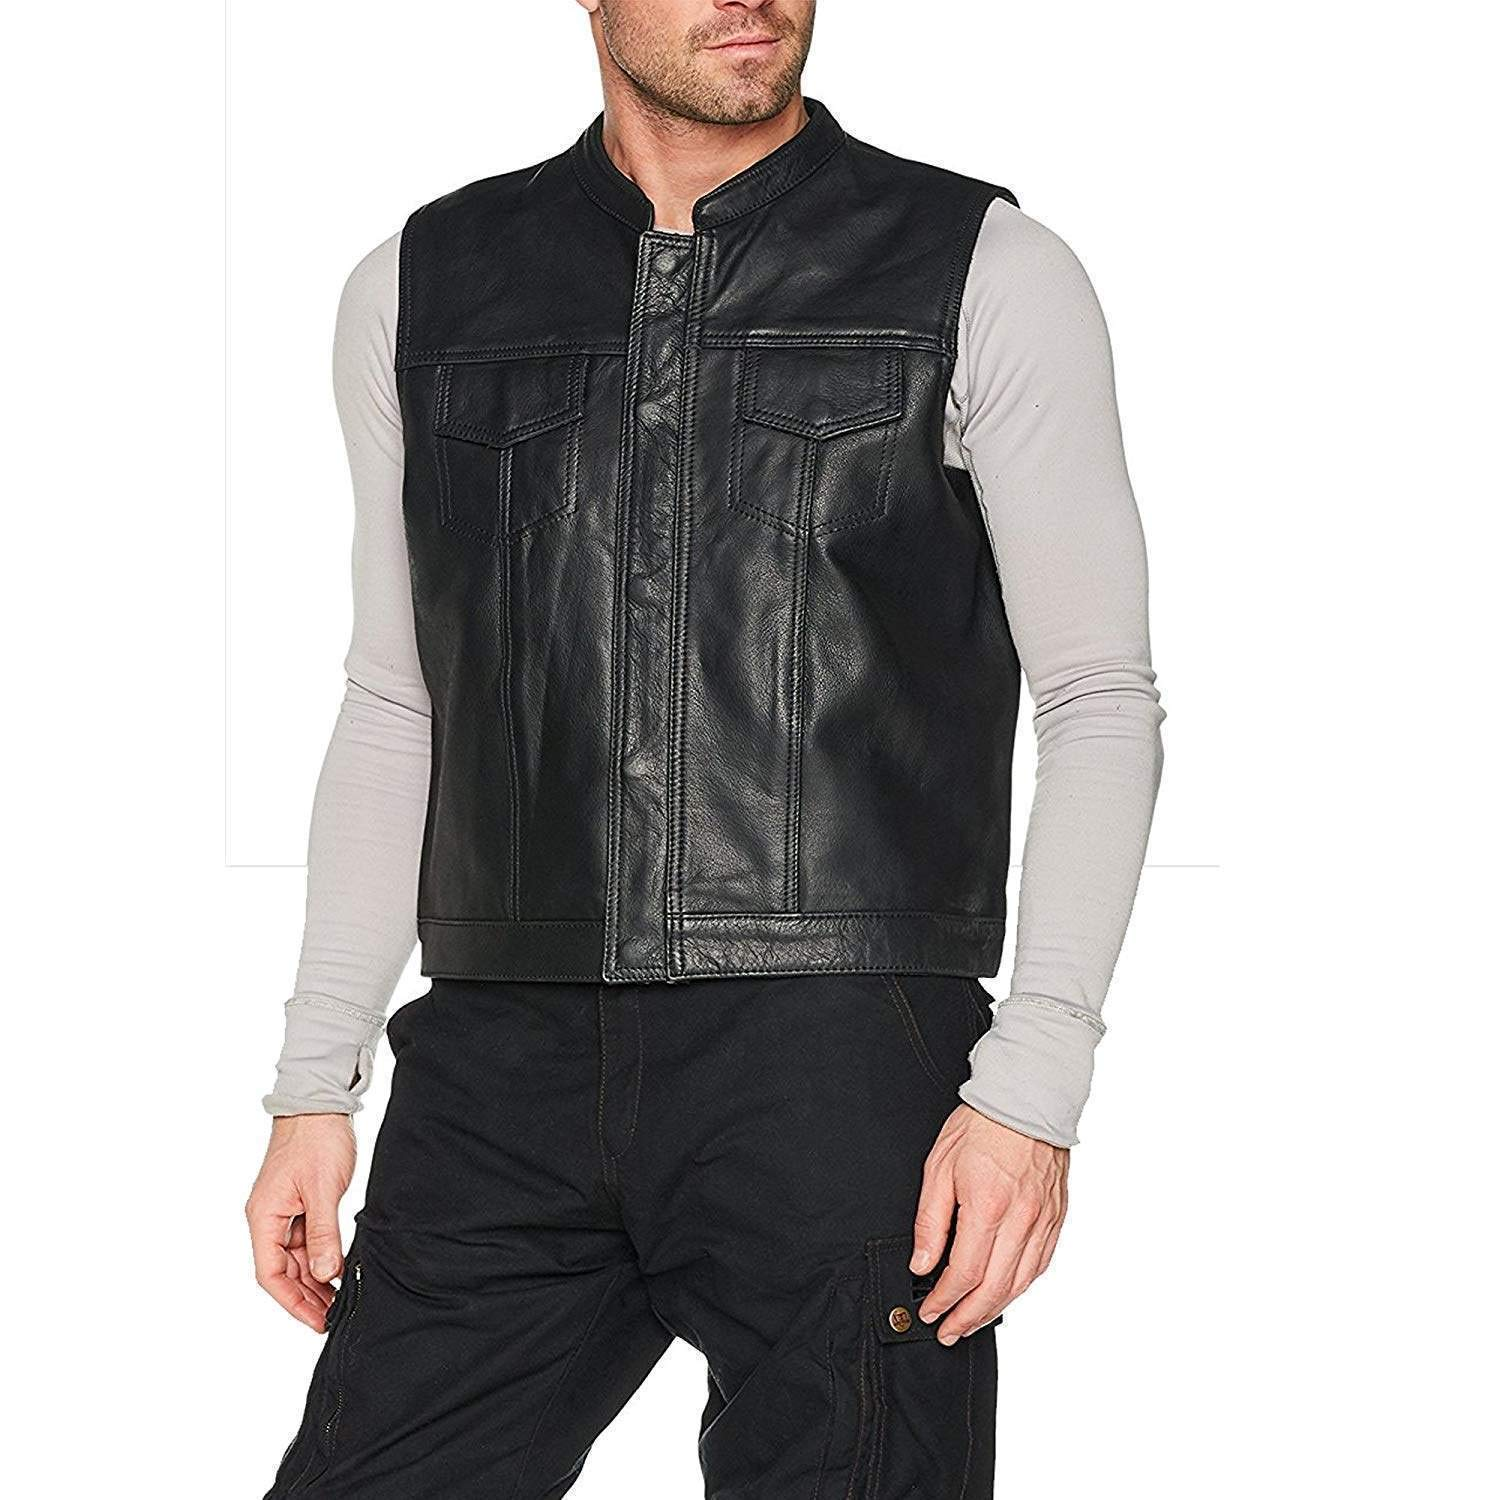 Bikers Gear Australia Black Revolver Motorcyle Leather Vest Sons of Anarchy Style Biker Sleeveless Waistcoat MED M Black